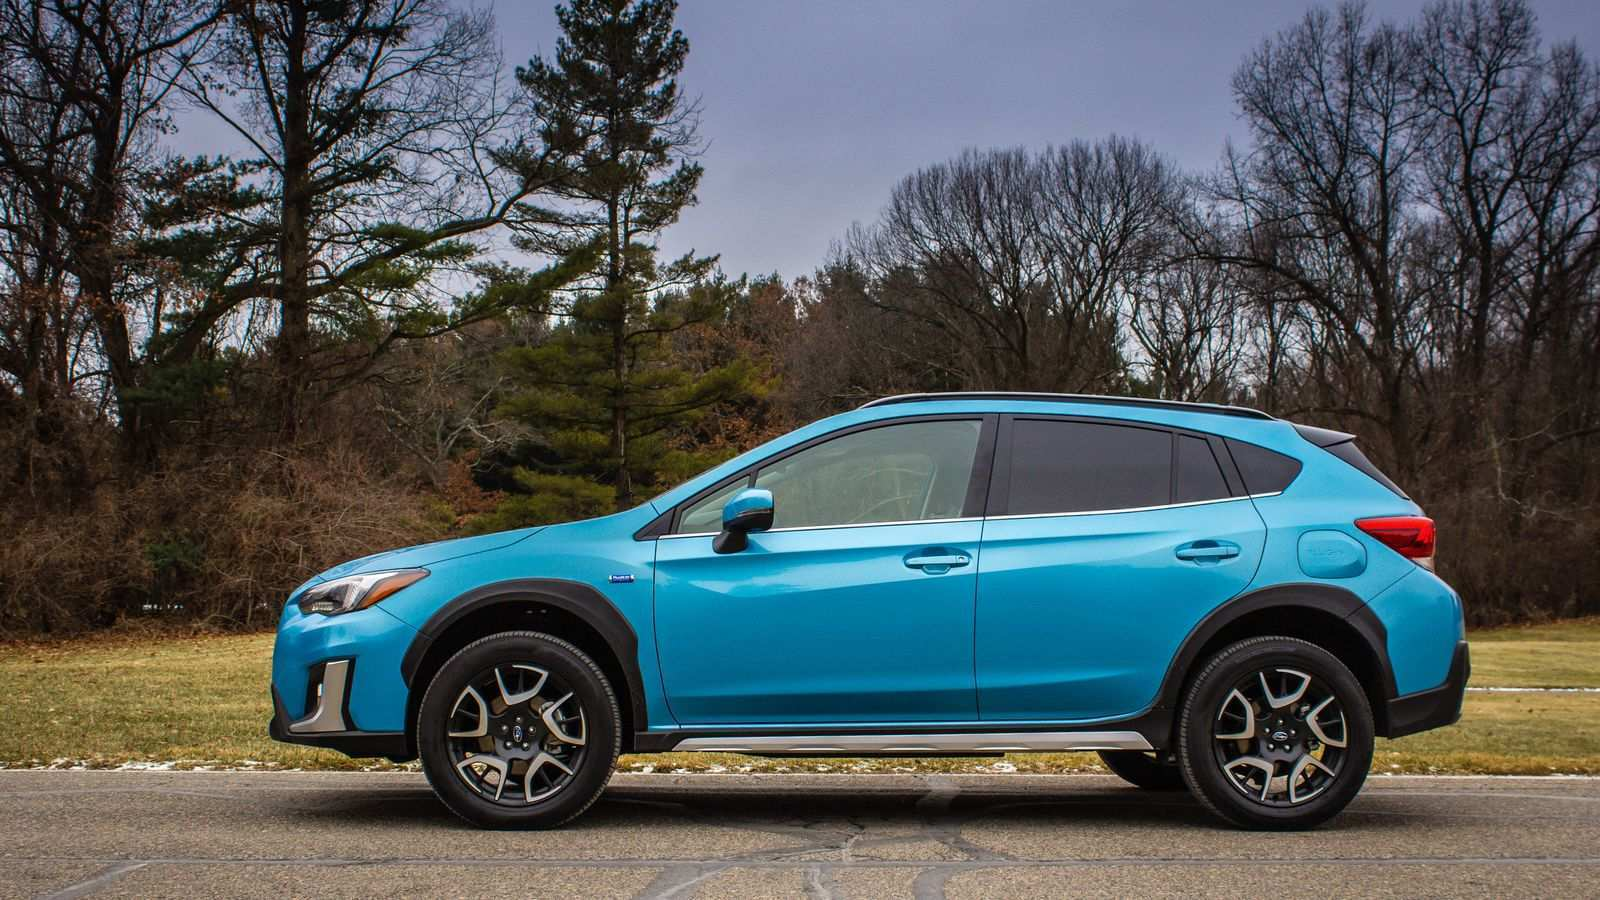 99 All New 2019 Subaru Hybrid Price Design And Review